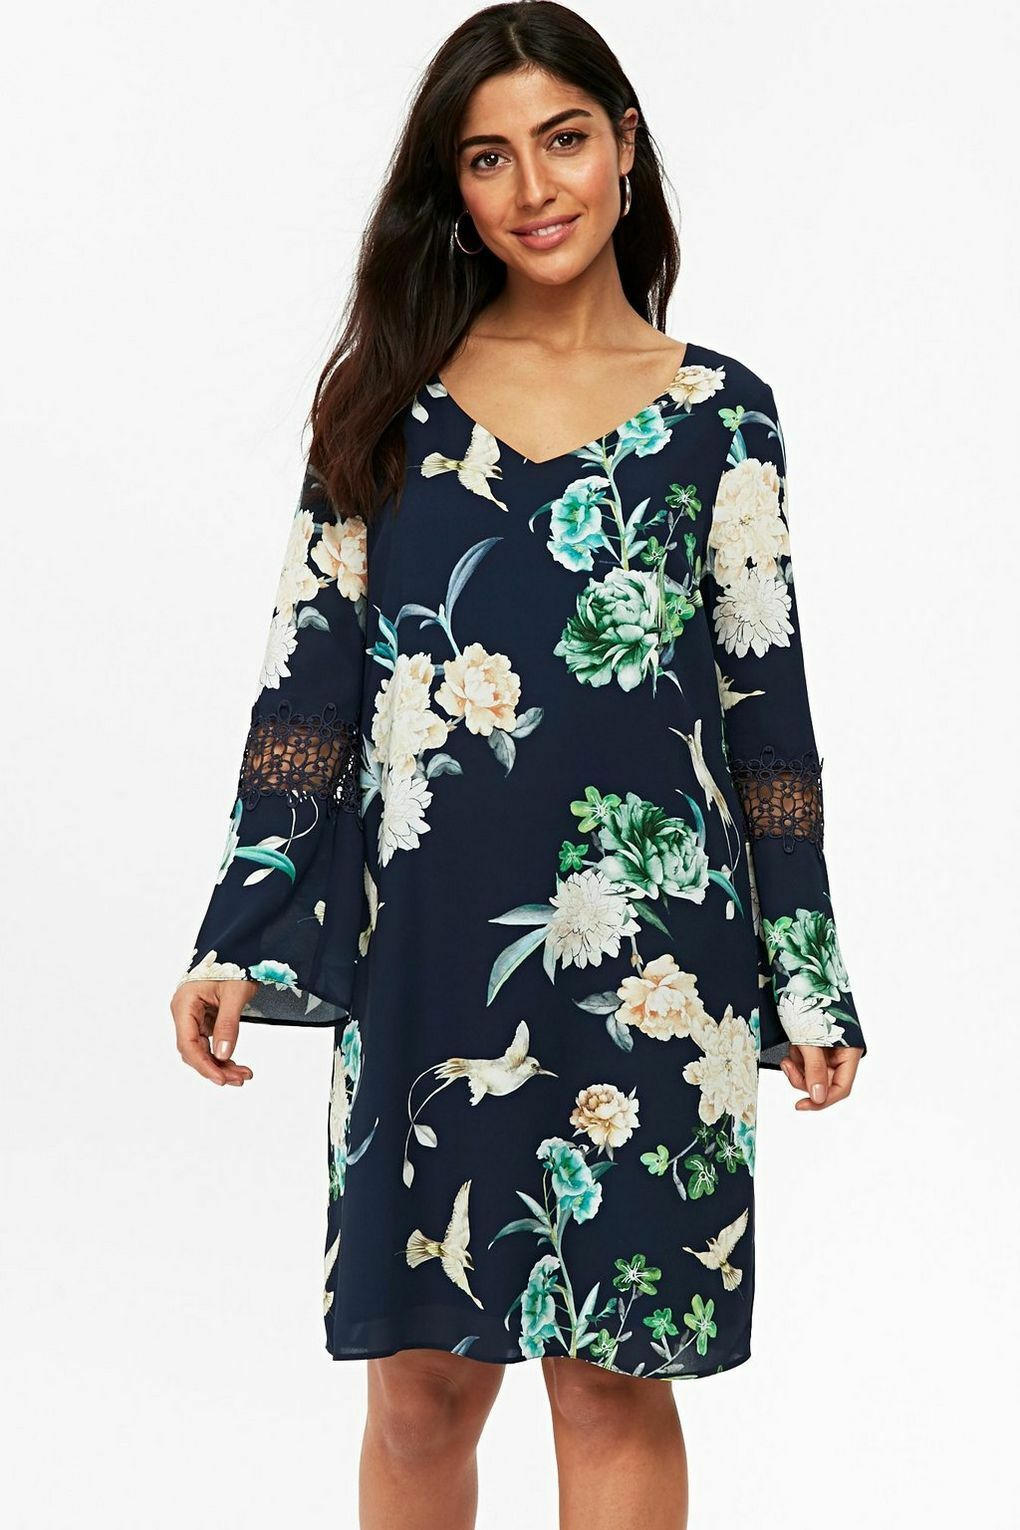 BNWT Wallis Multi Navy Oriental Floral Shift Dress 12